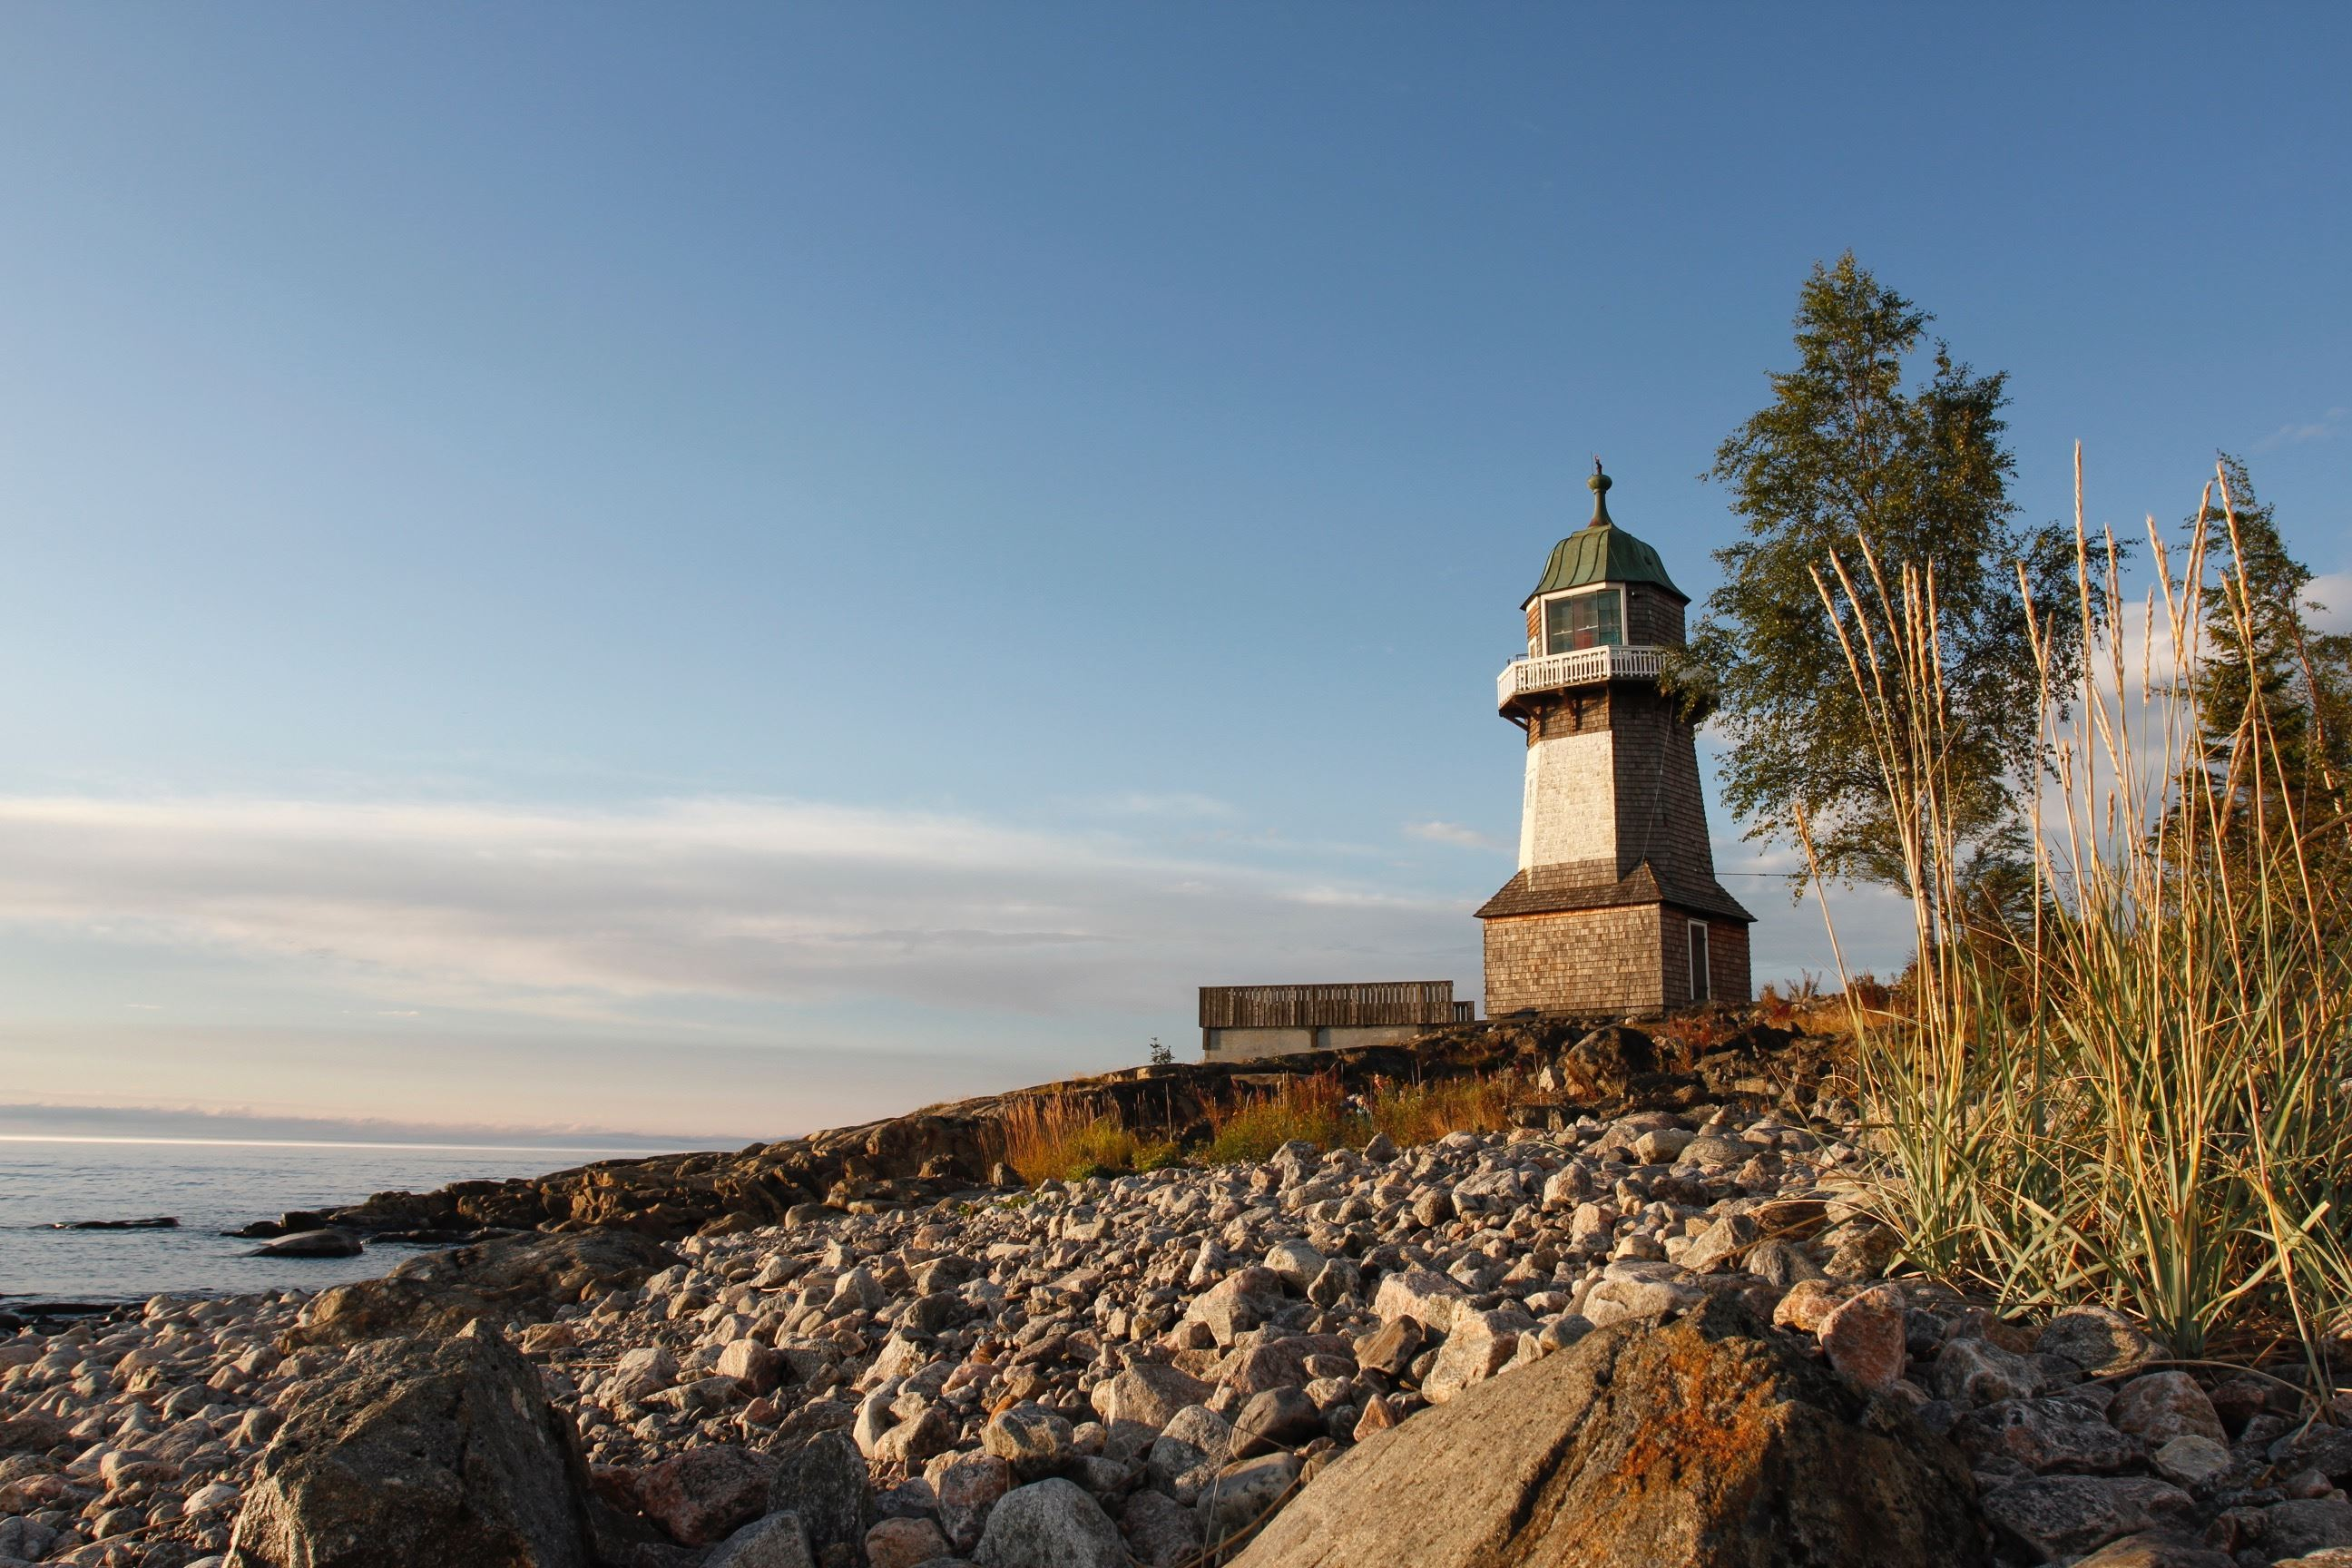 © Bergudden, Youth Hostel, Berguddens's Lighthouse